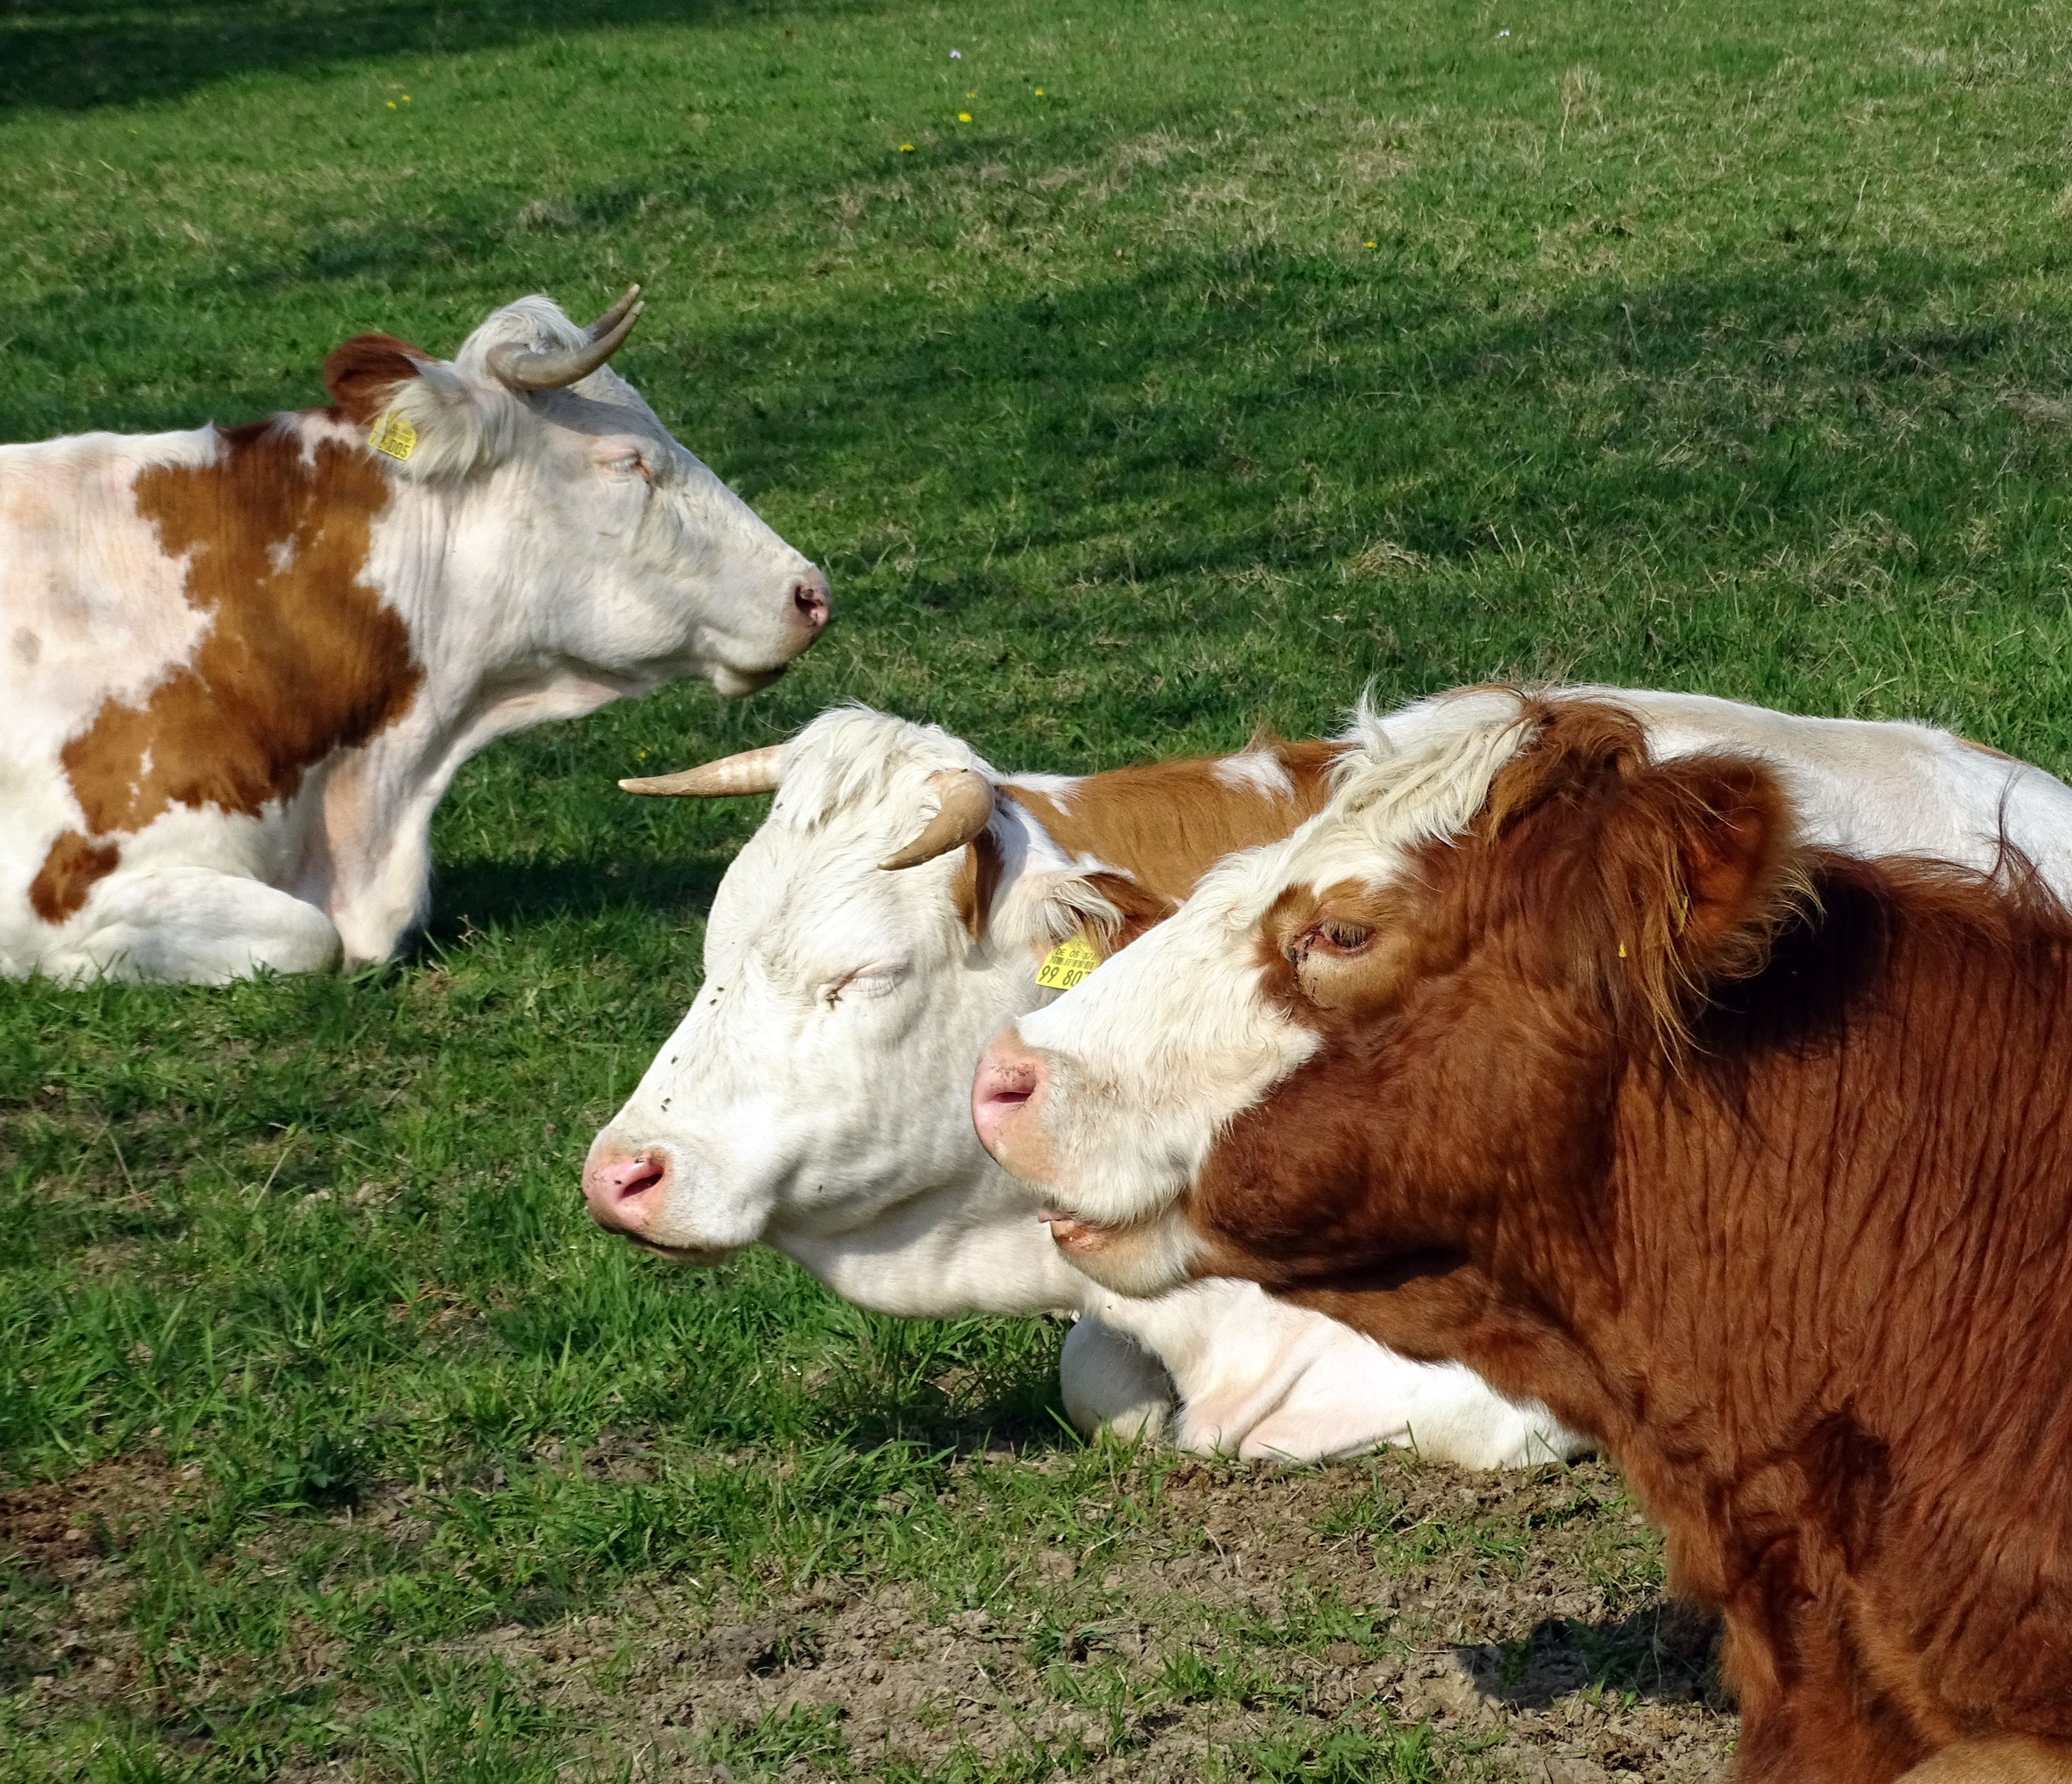 How to Make Money Buying & Selling Cattle | Bizfluent